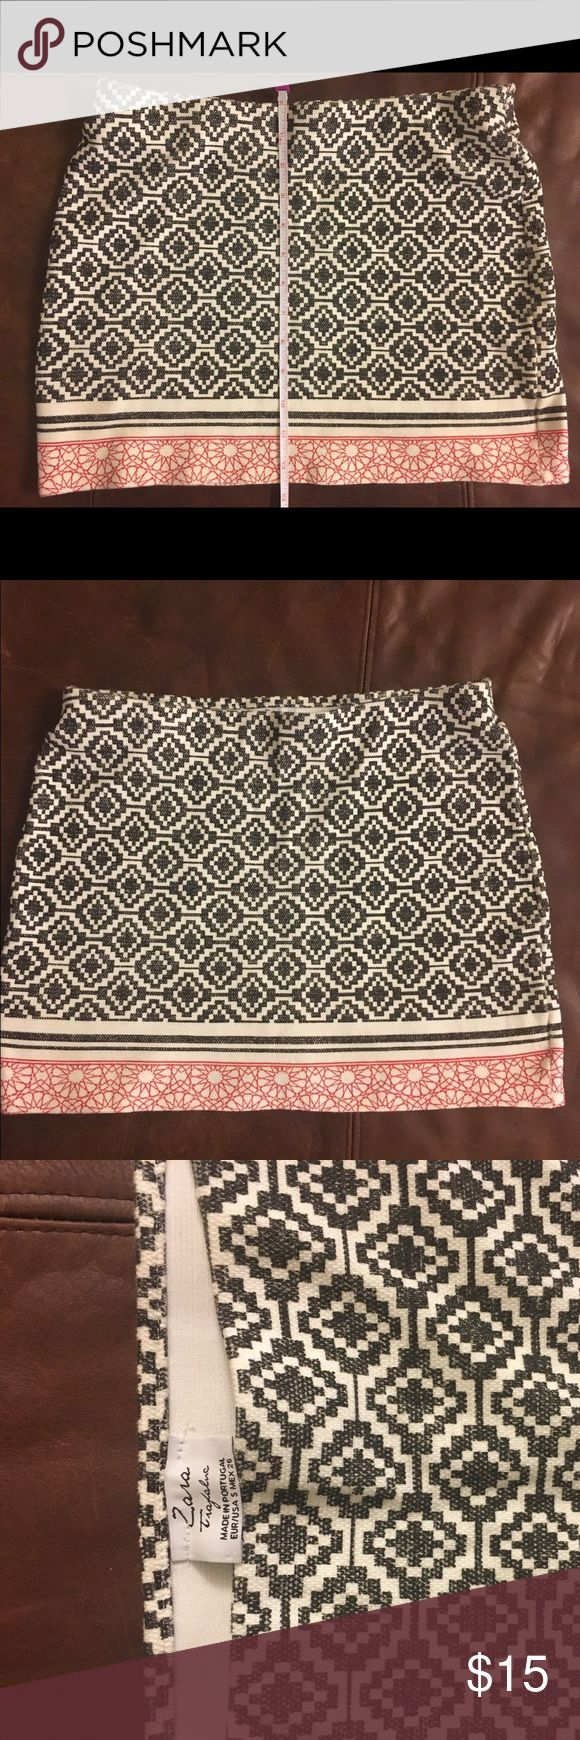 "Zara Patterned Bandeau Skirt -- great condition! New Zara bandeau mini skirt that is perfect for summer. Looks great with a tucked in shirt. Size Small. Length is 12.5"". Skirt is in great condition. Zara Skirts Mini"